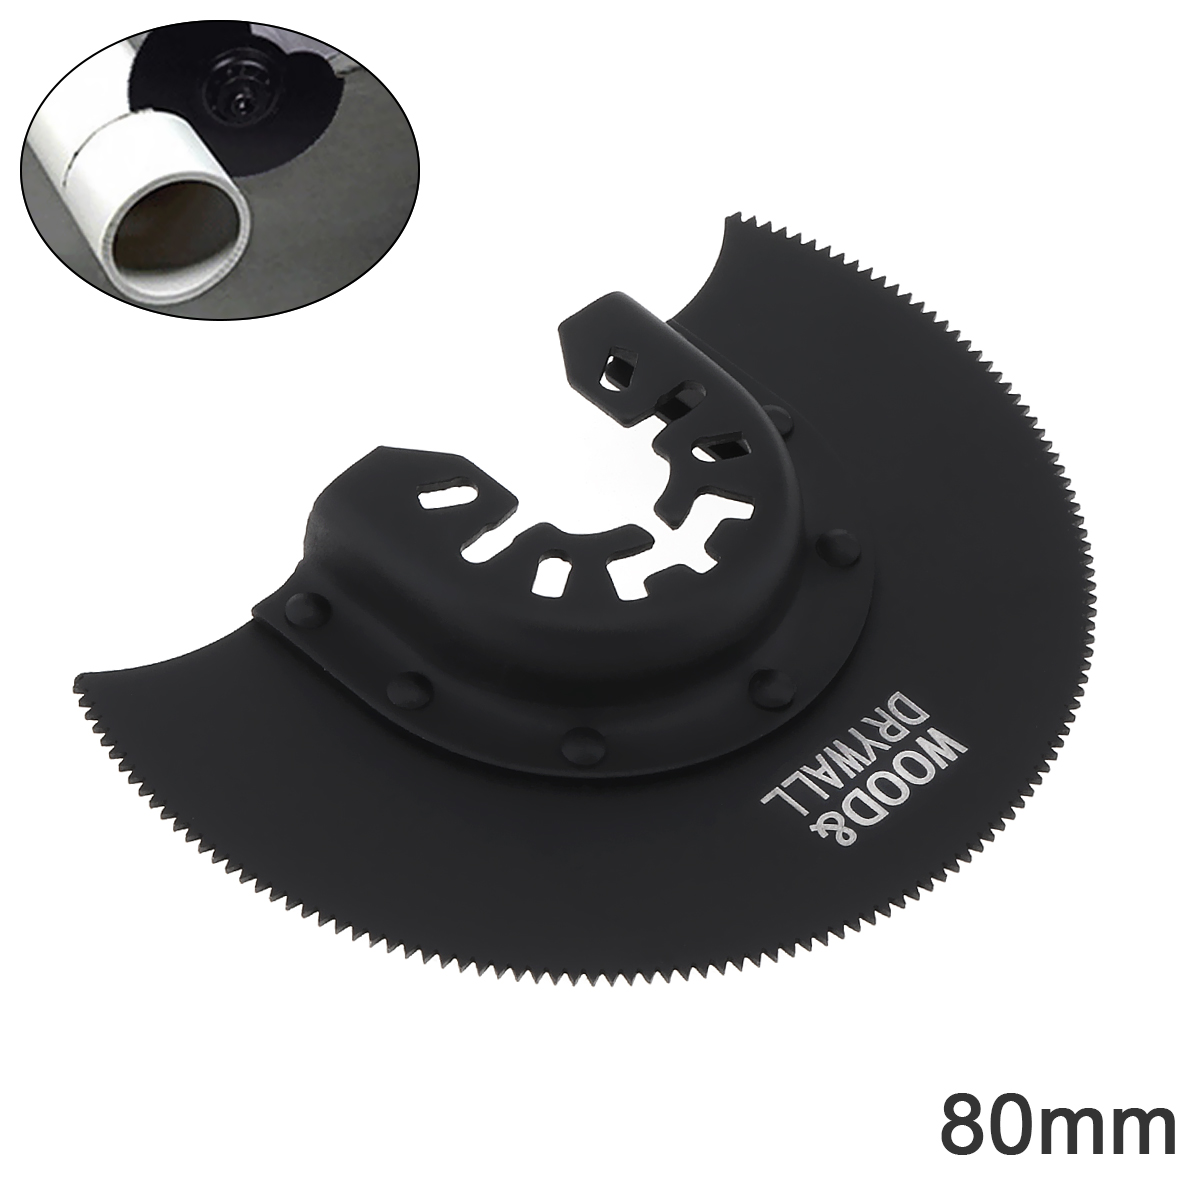 80mm Black 65 Manganese Steel Saw Blade Power Tool Accessories With Sharp Tooth Fit For Wood Cutting / Sheet Grinding